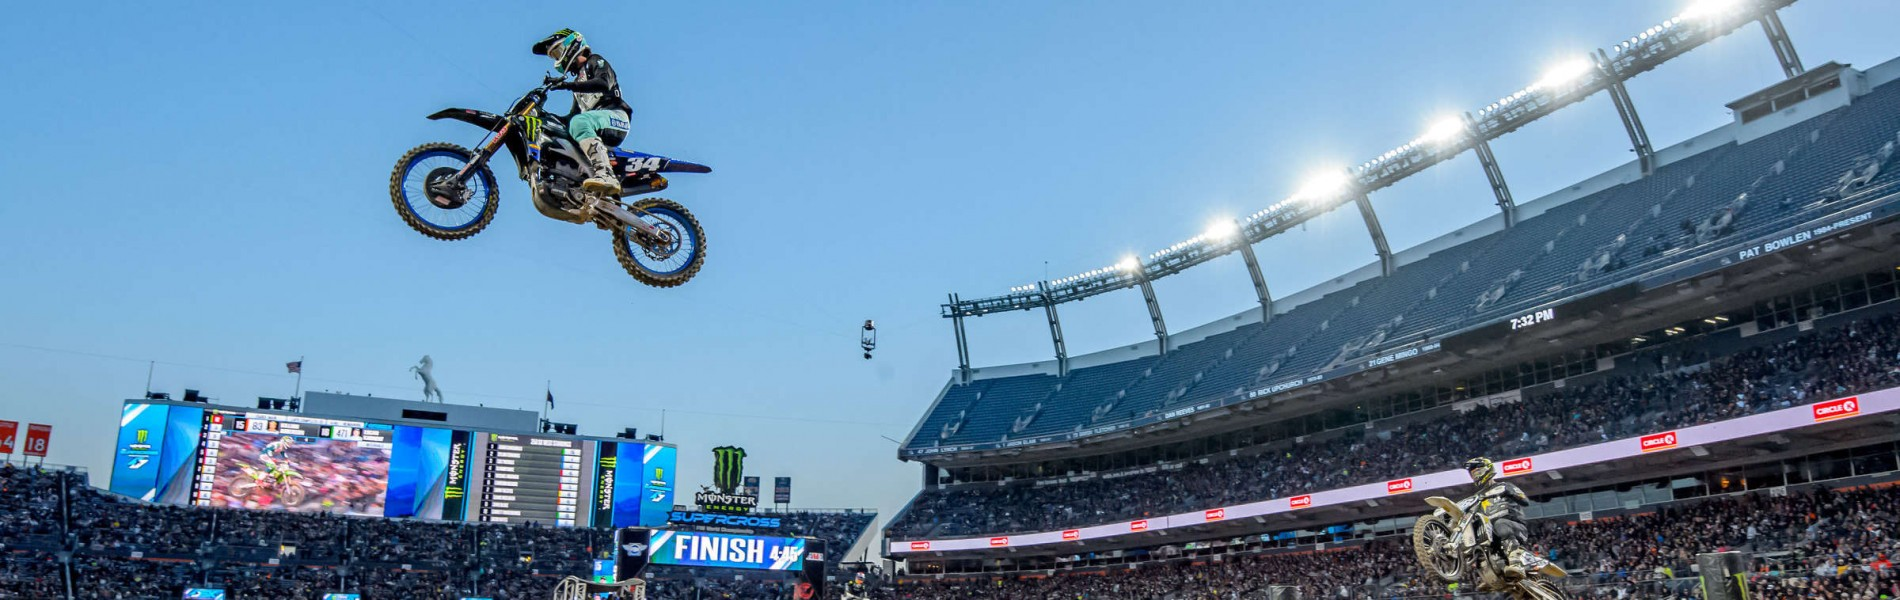 Shots from Supercross in Denver, Colorado